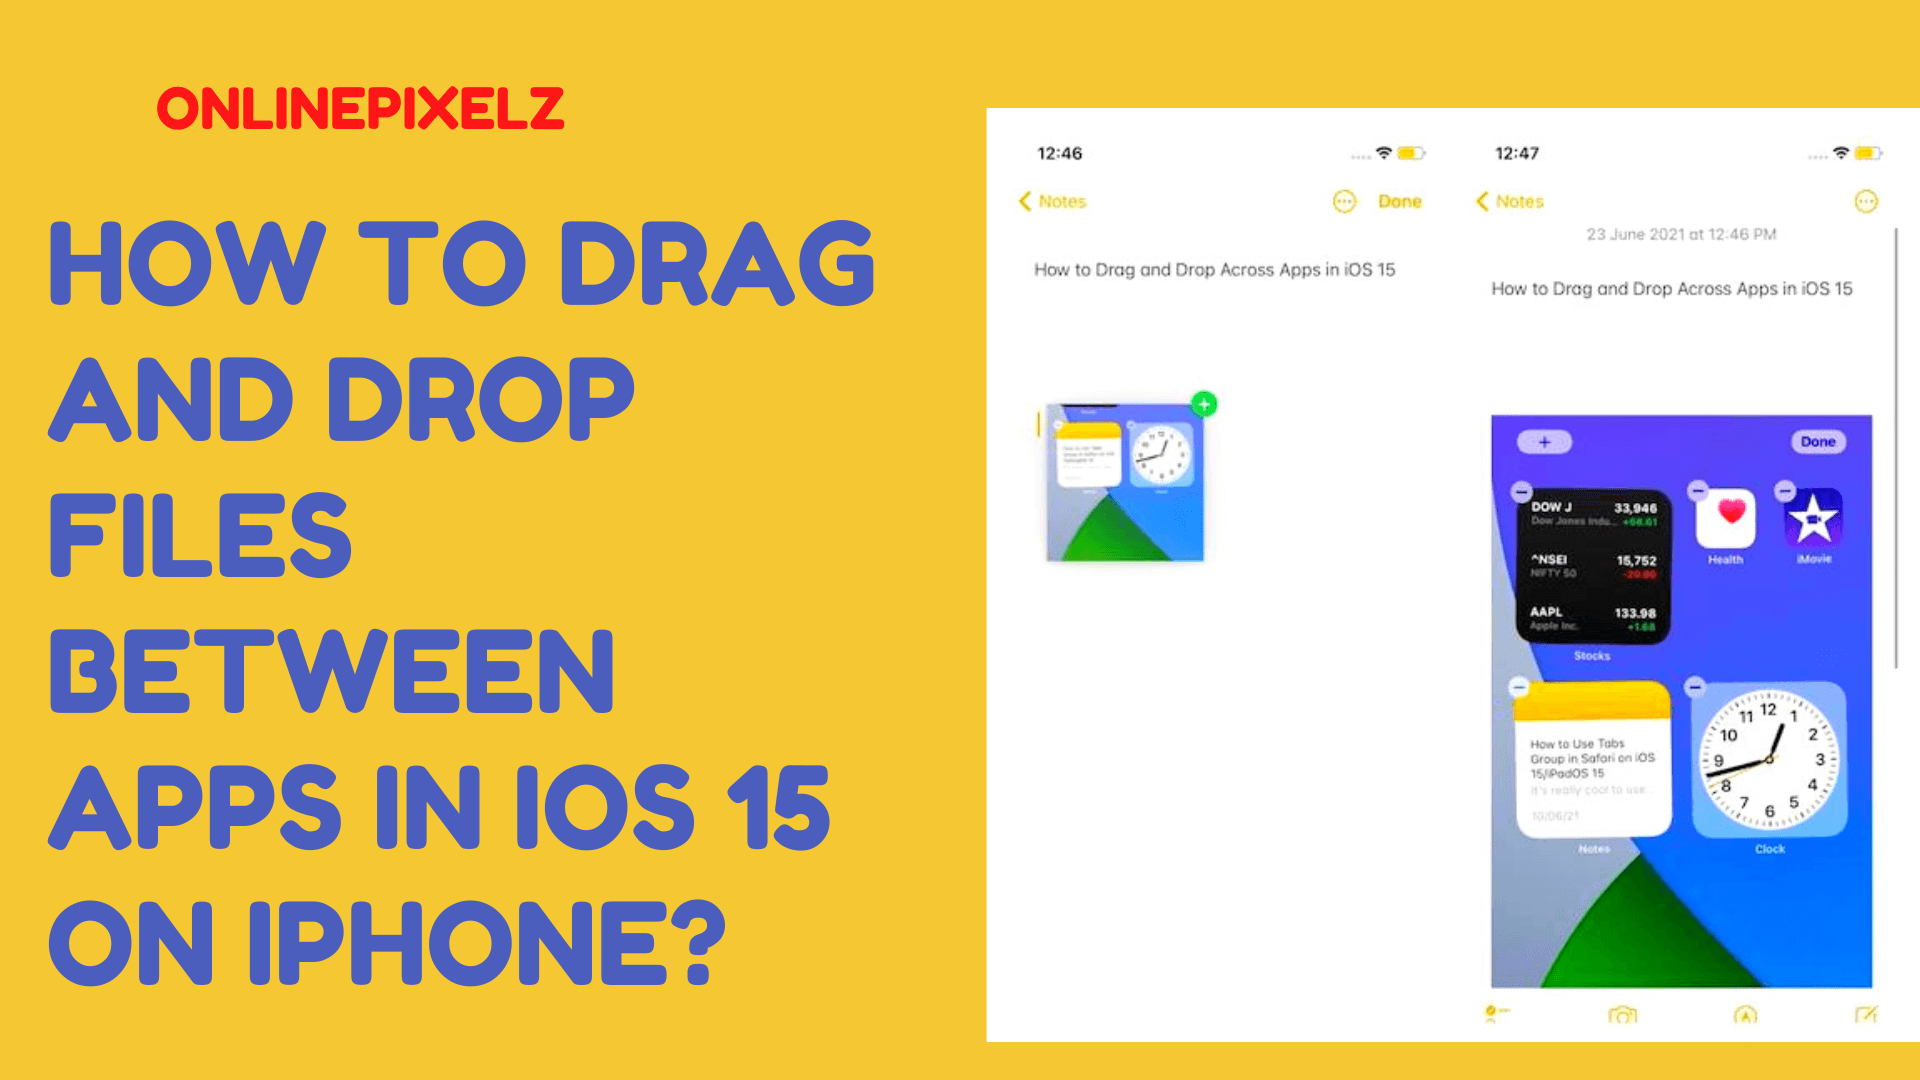 How to Drag and Drop Files Between Apps in iOS 15 on iPhone